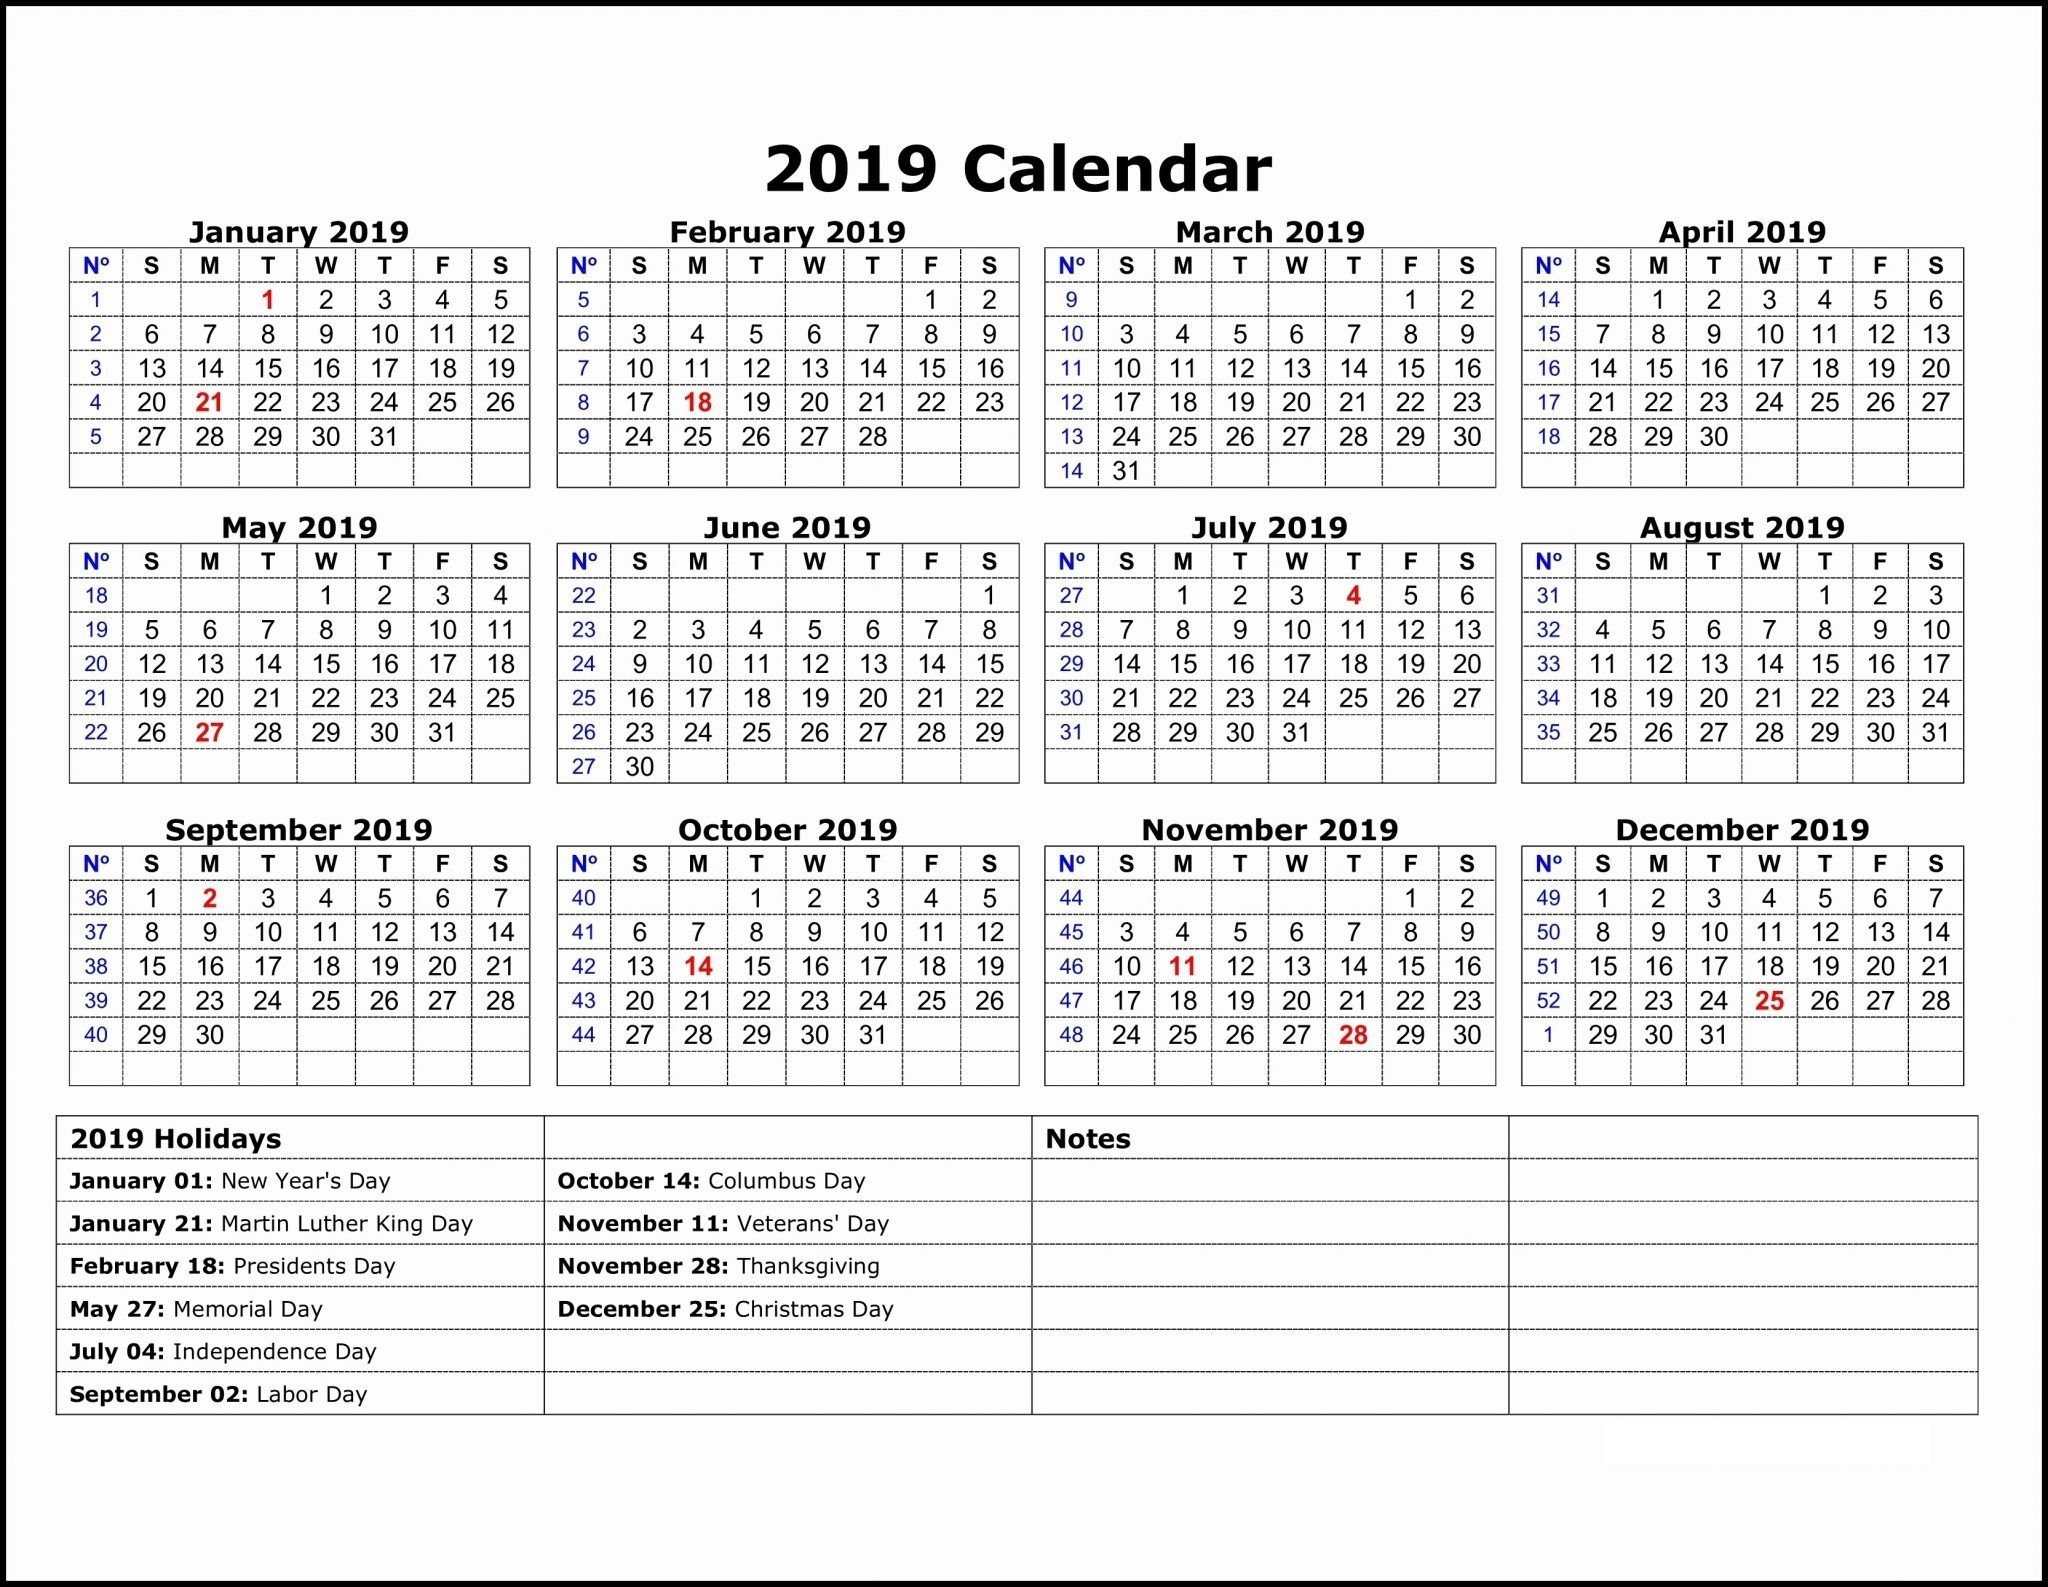 2019 Calendar Template One Page | Printable Calendar